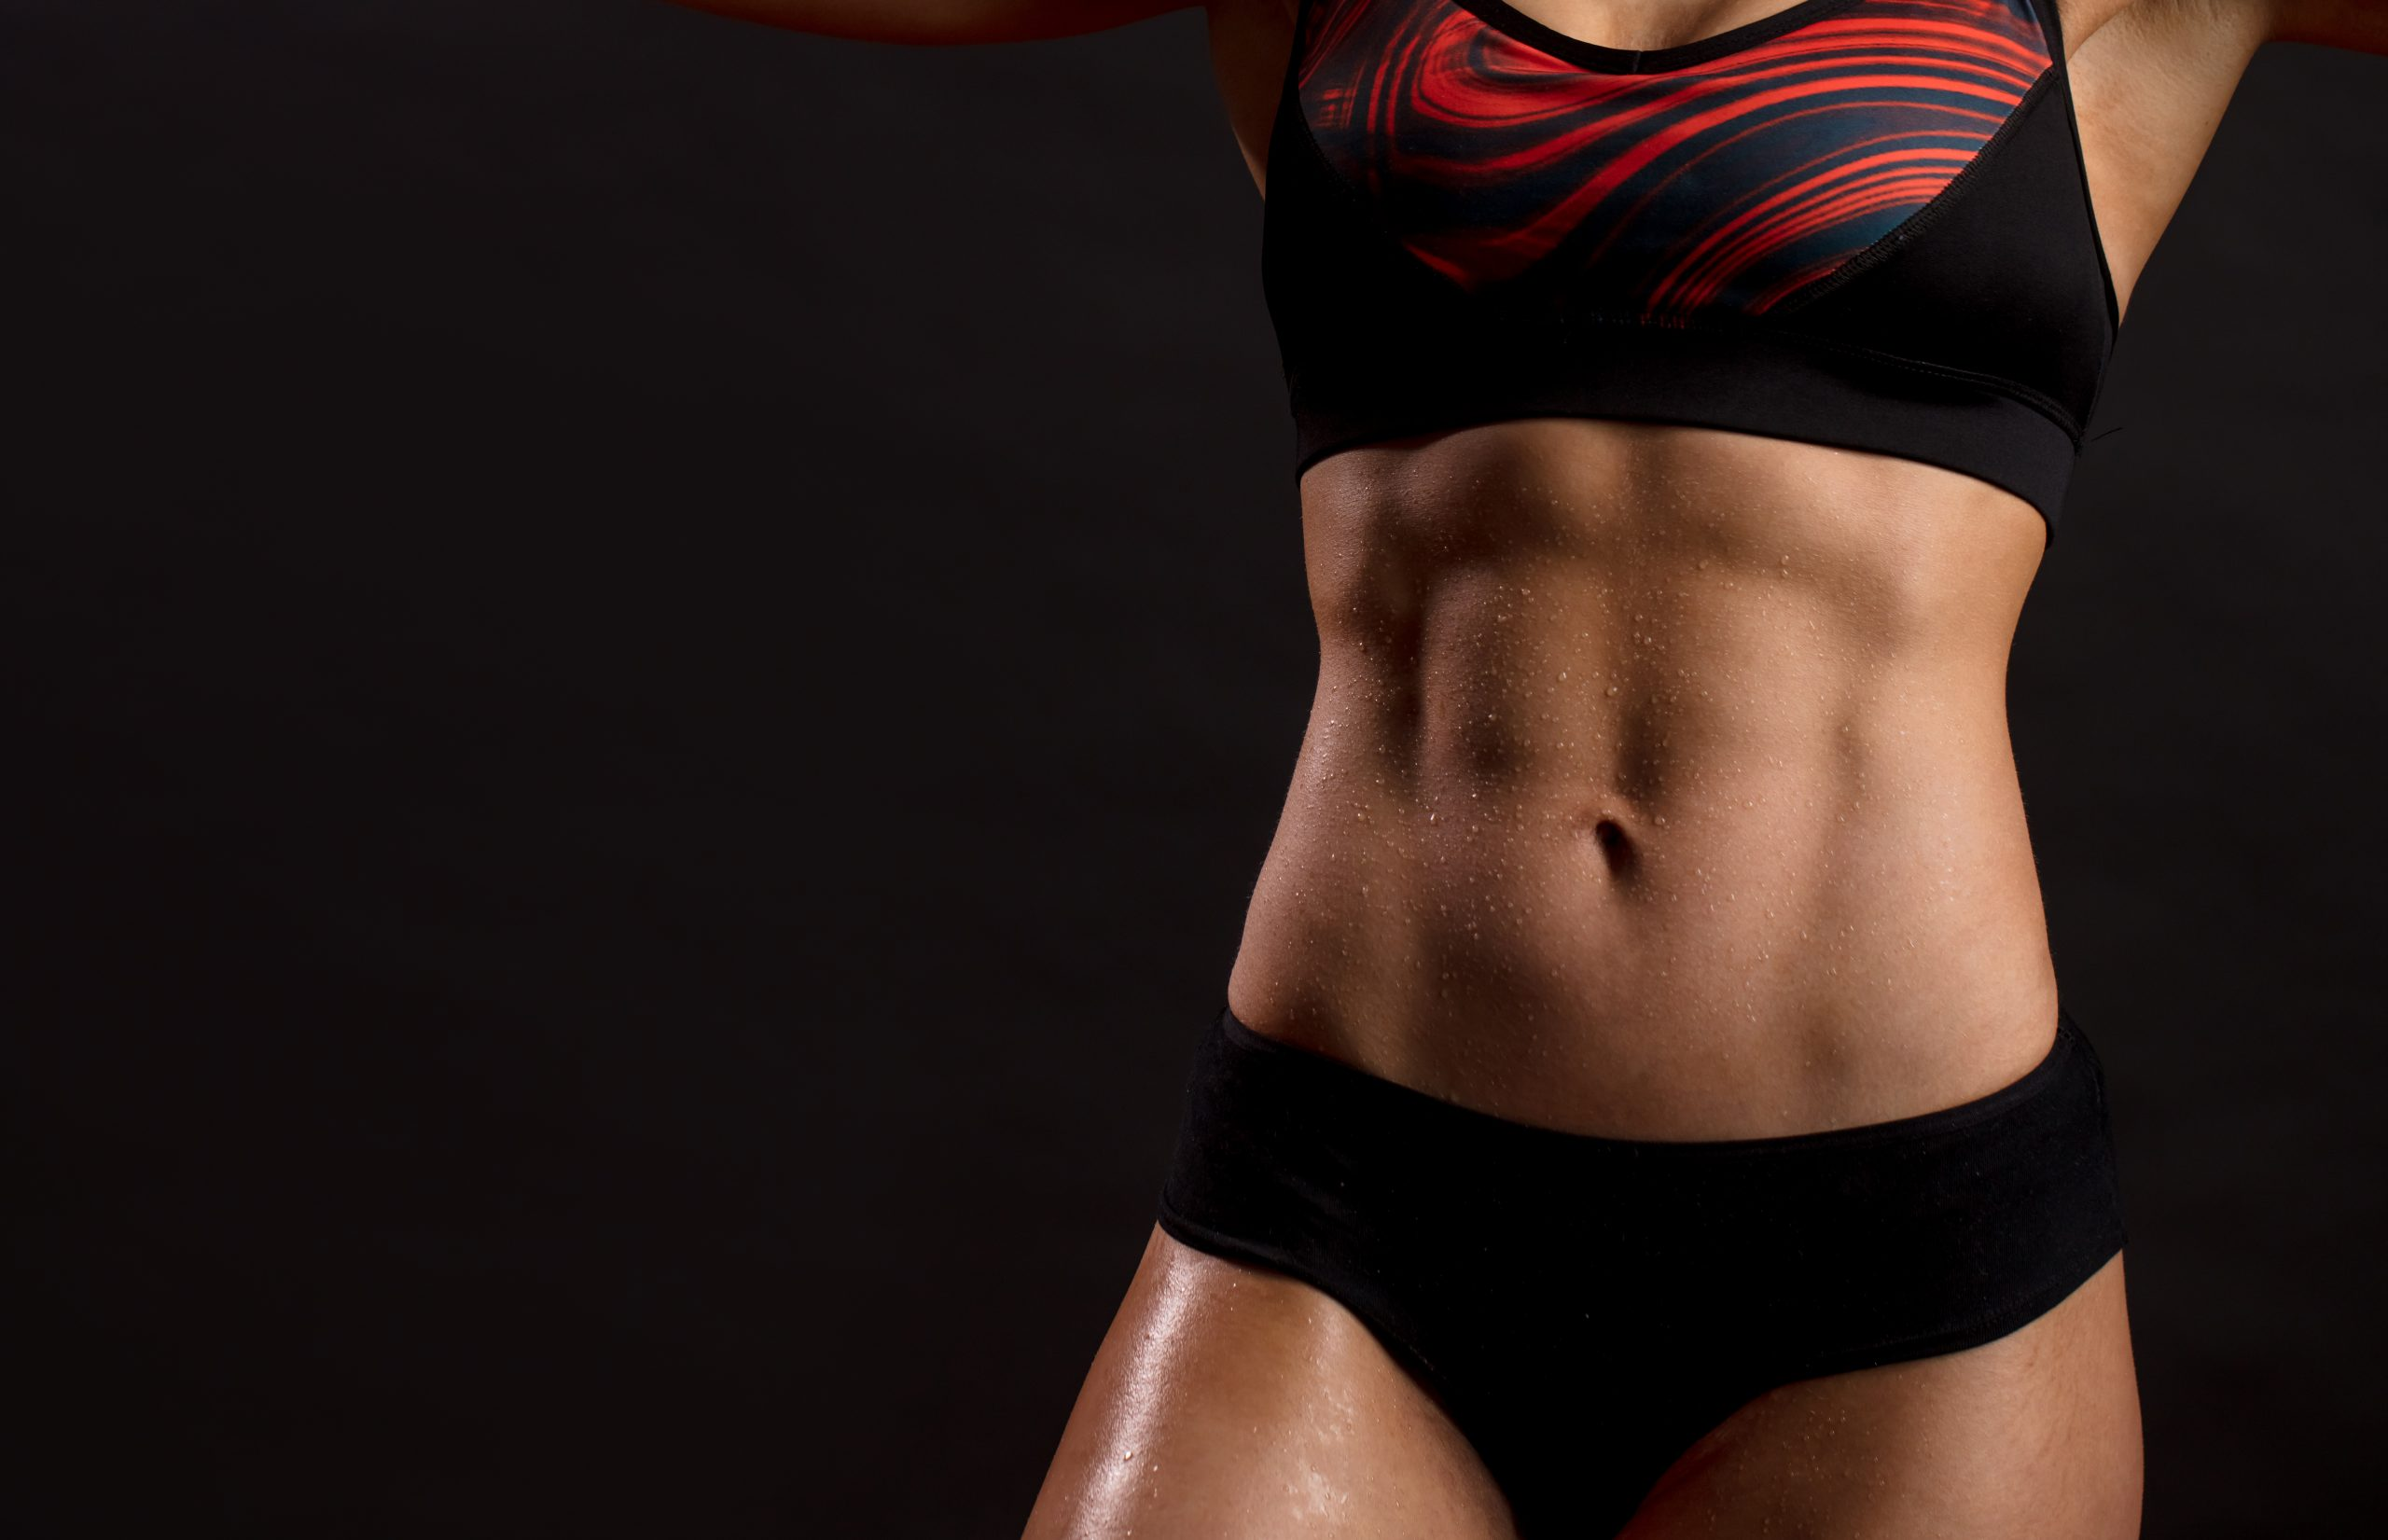 Unrecognizable woman showing off her perfect muscular ripped abs, close up.